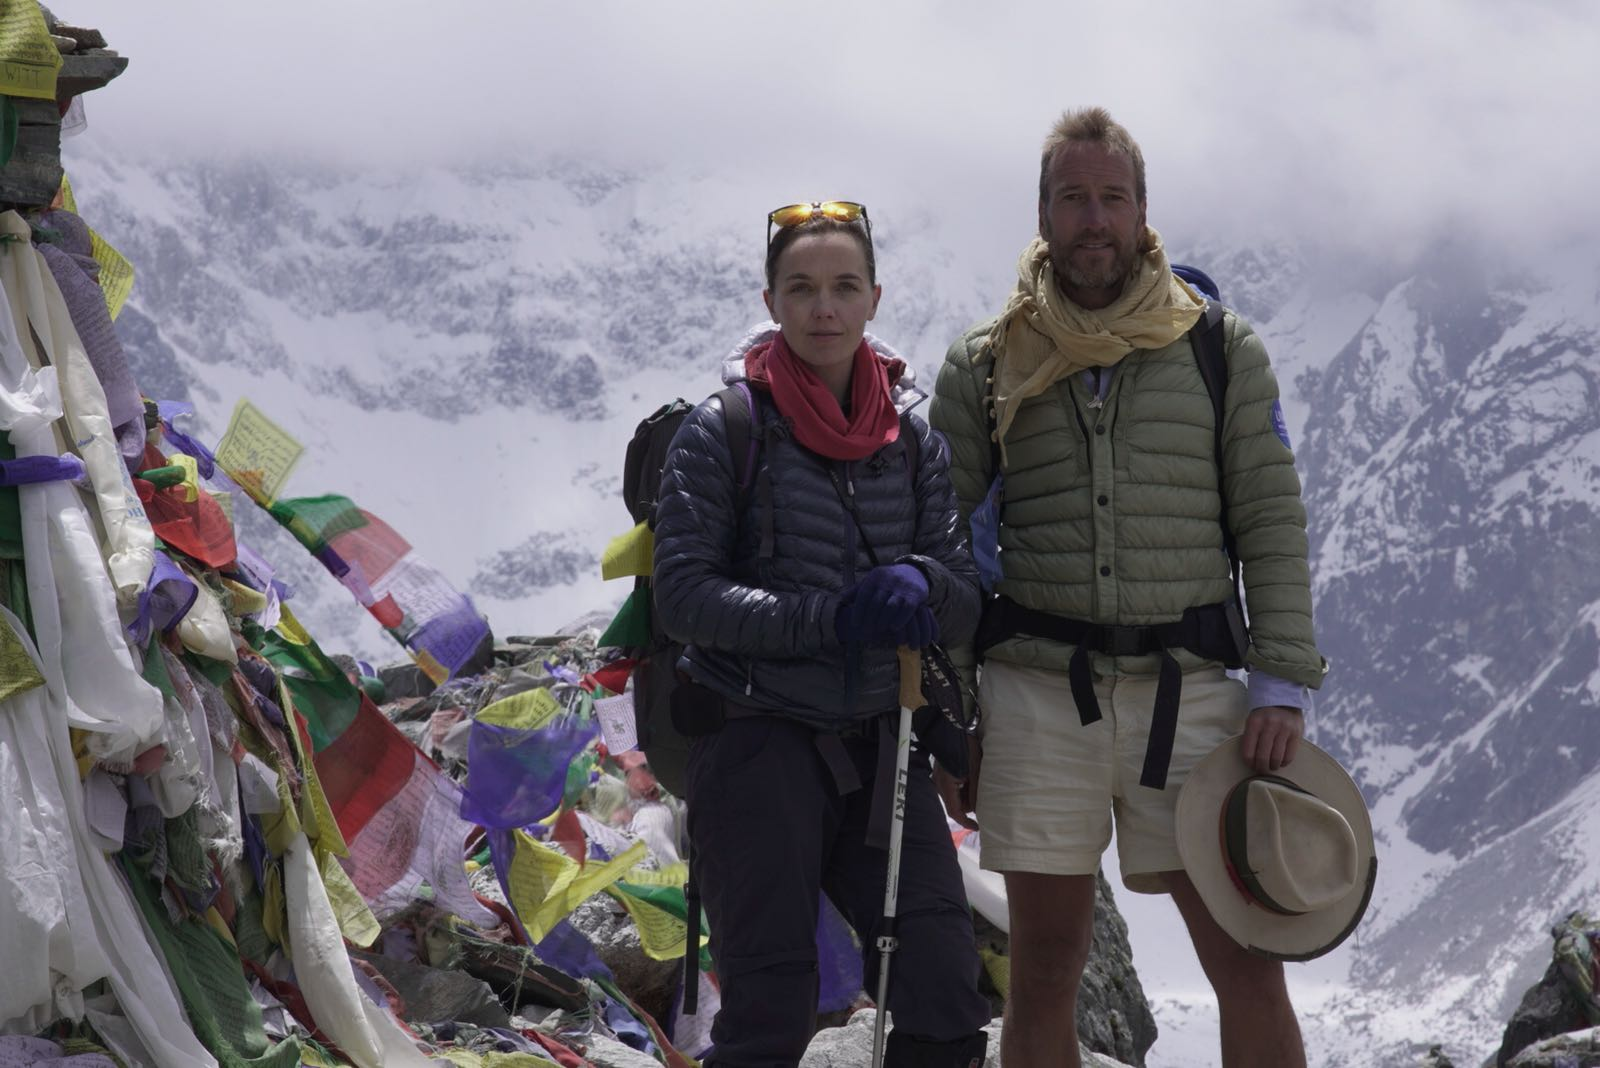 Everest documentary on CNN for nature lovers